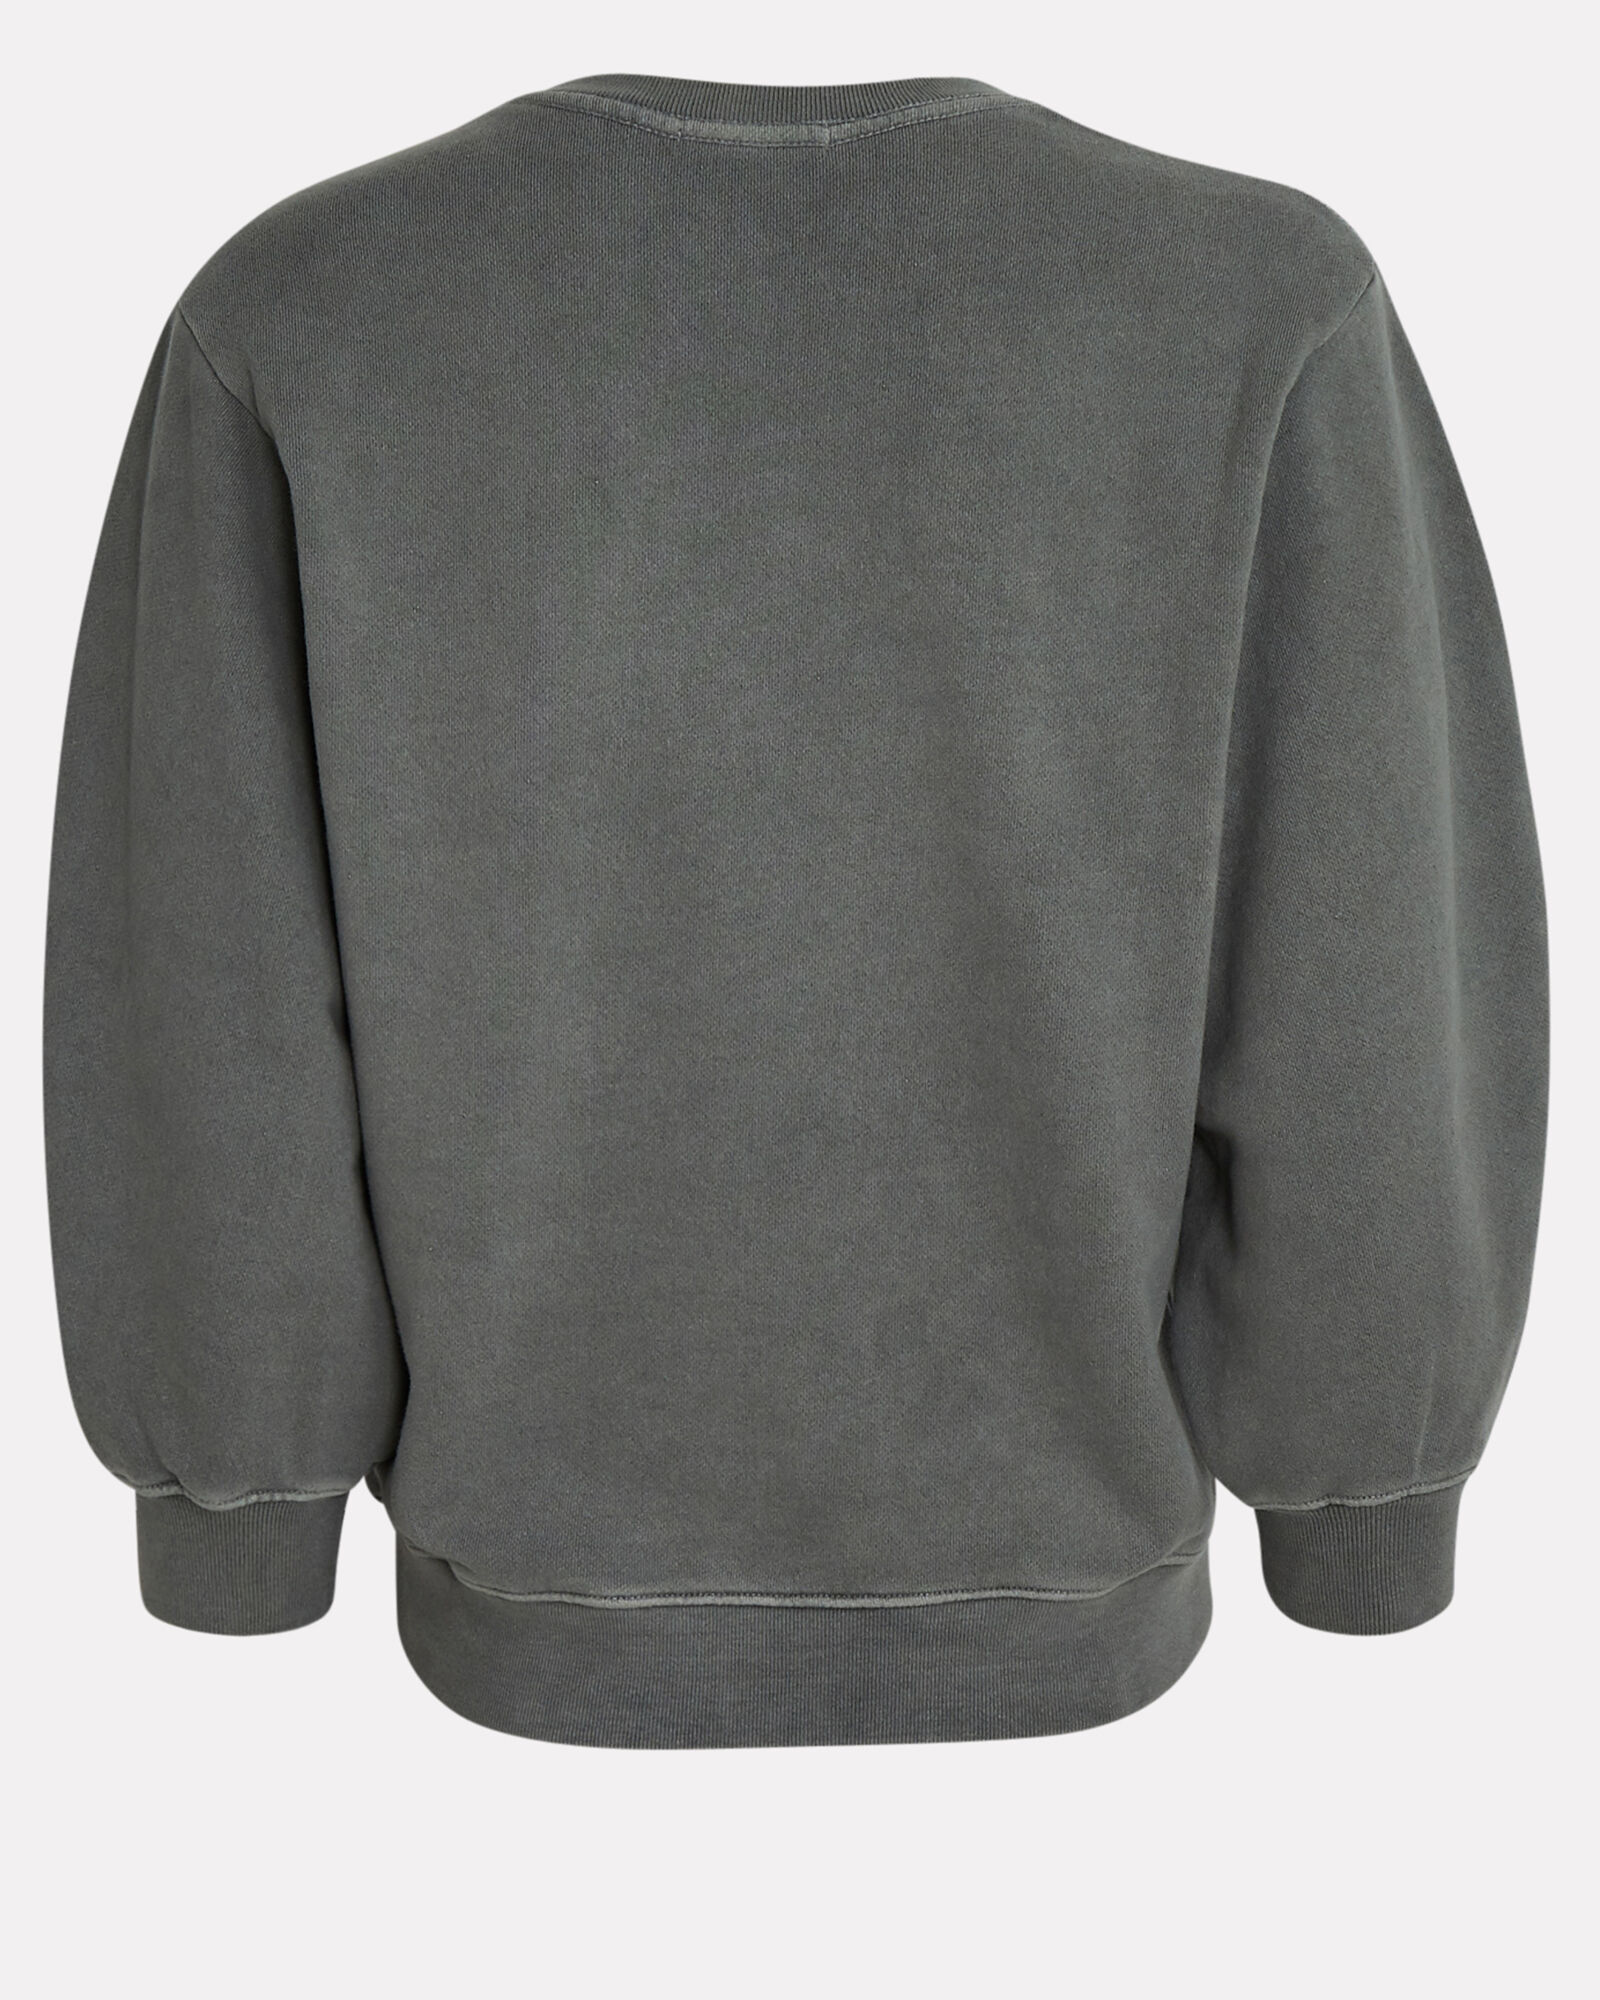 Thora Cotton Crewneck Sweatshirt, GREY, hi-res